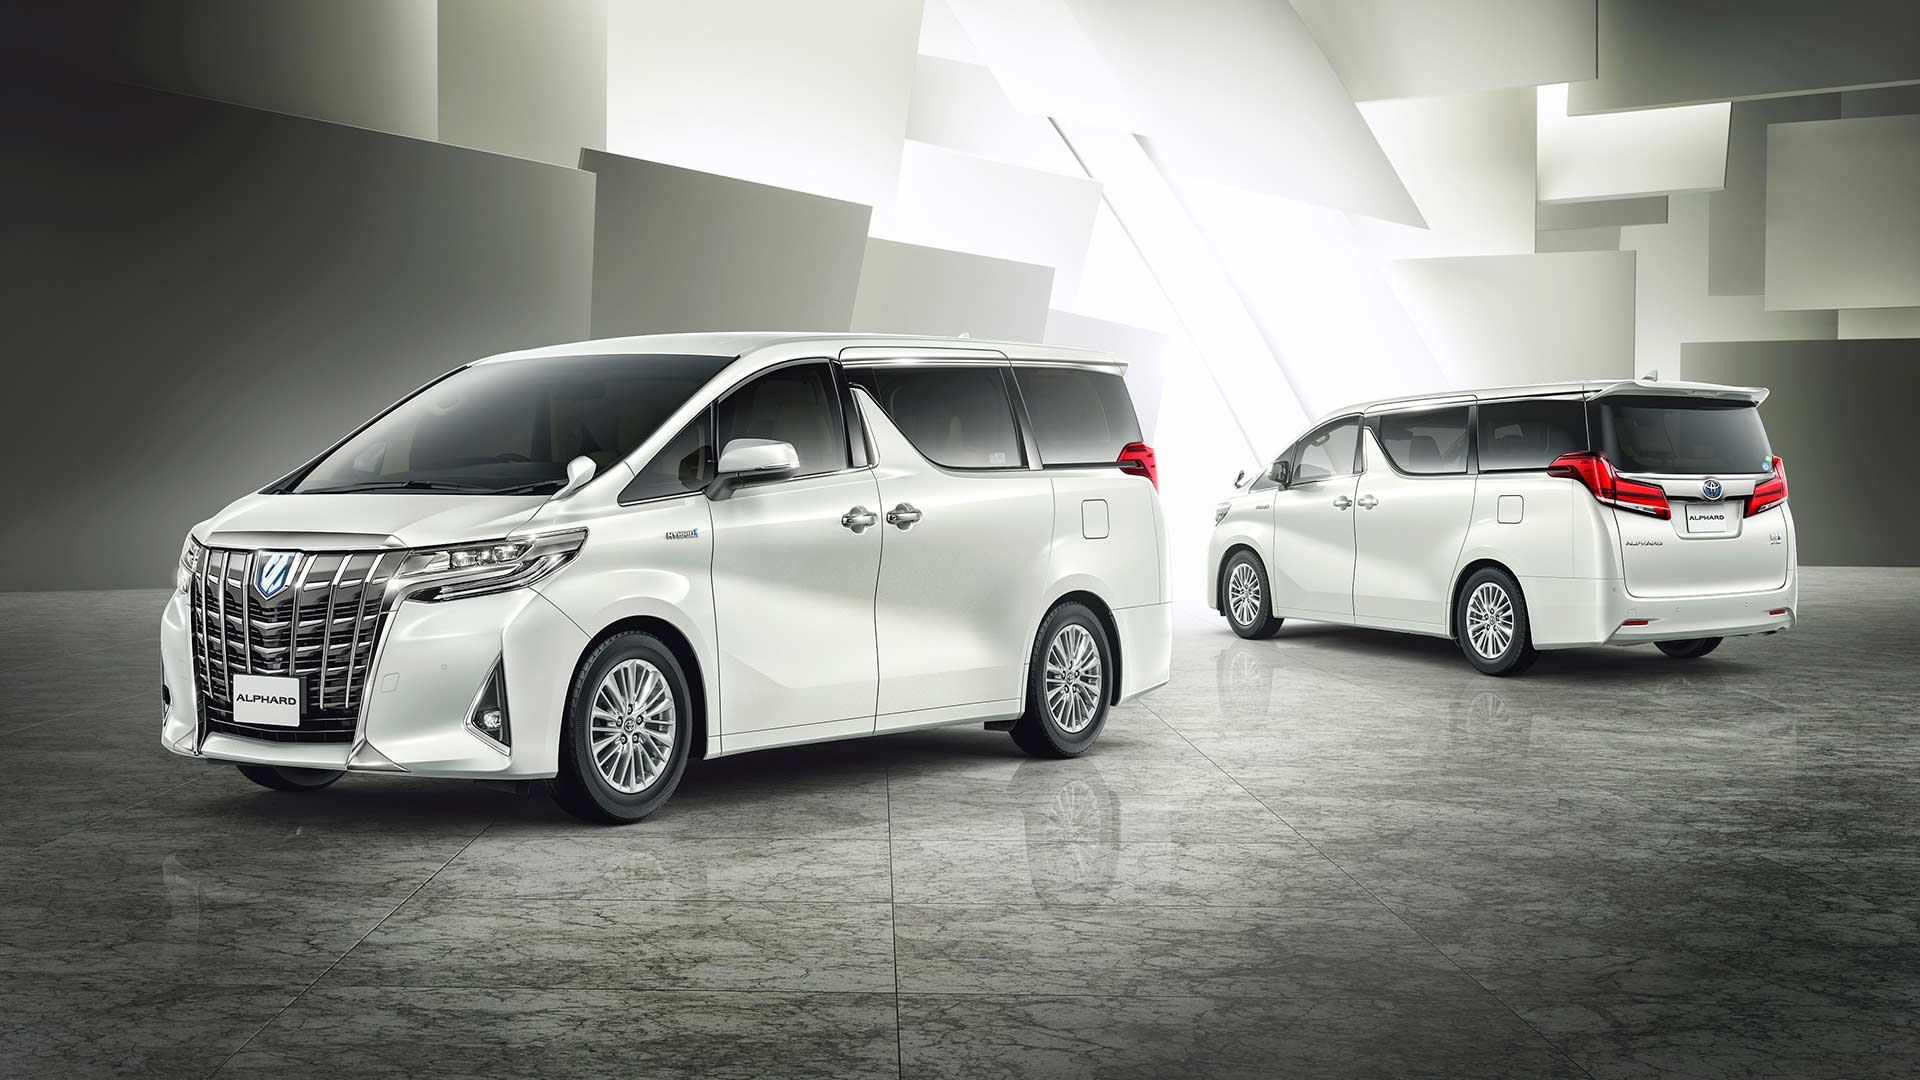 2018 Toyota Alphard And Vellfire Revealed Autodevot